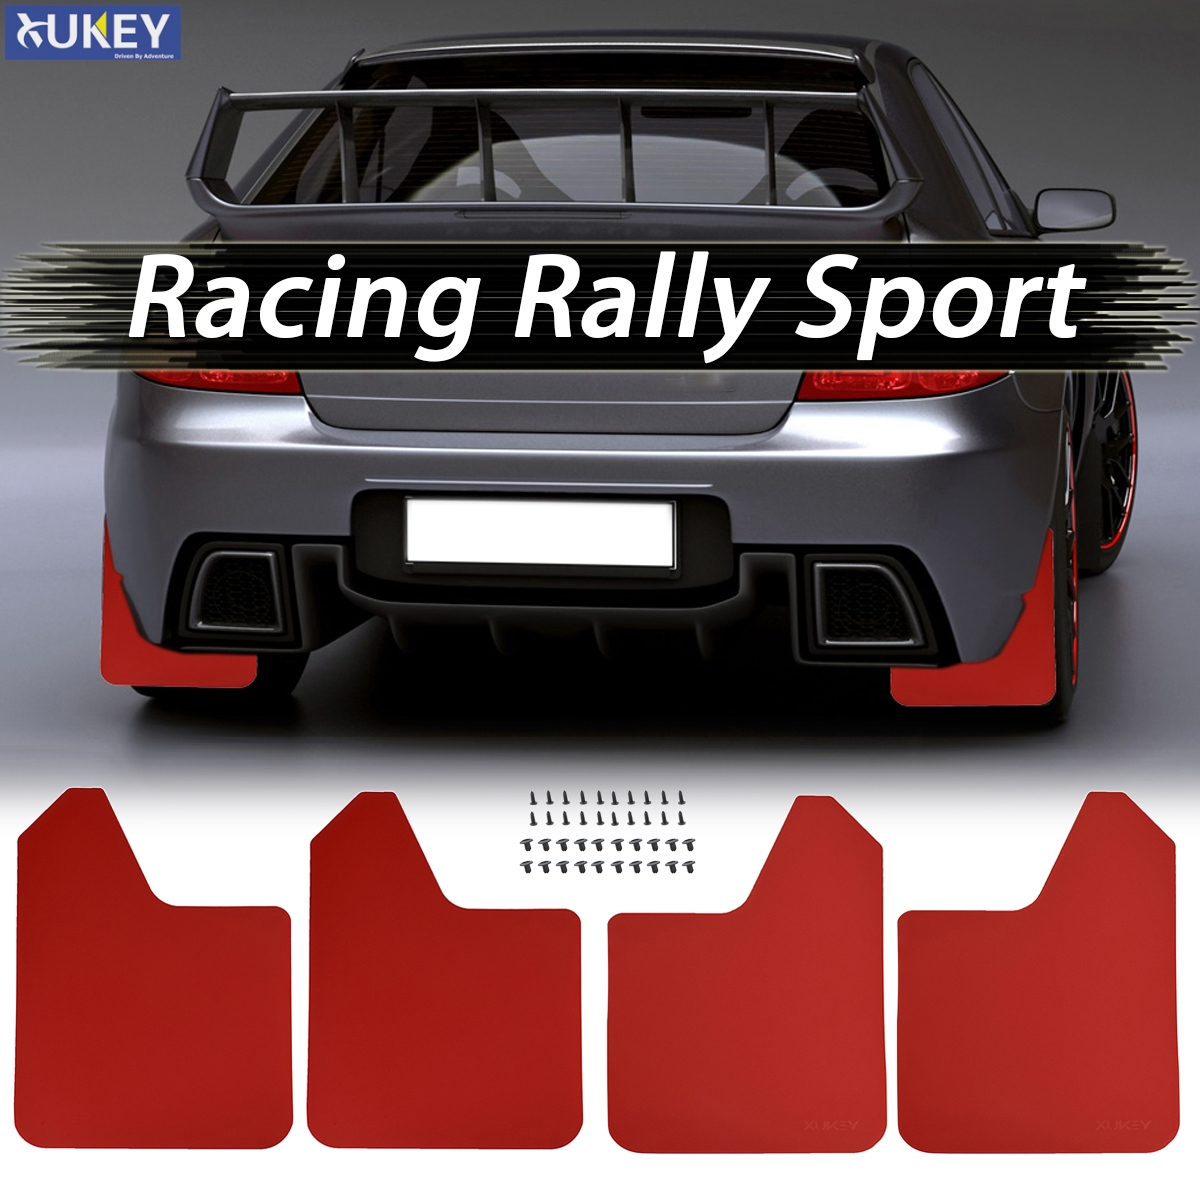 car BLACK rally race mudflap set mud flaps splash guards PAIR universal sports